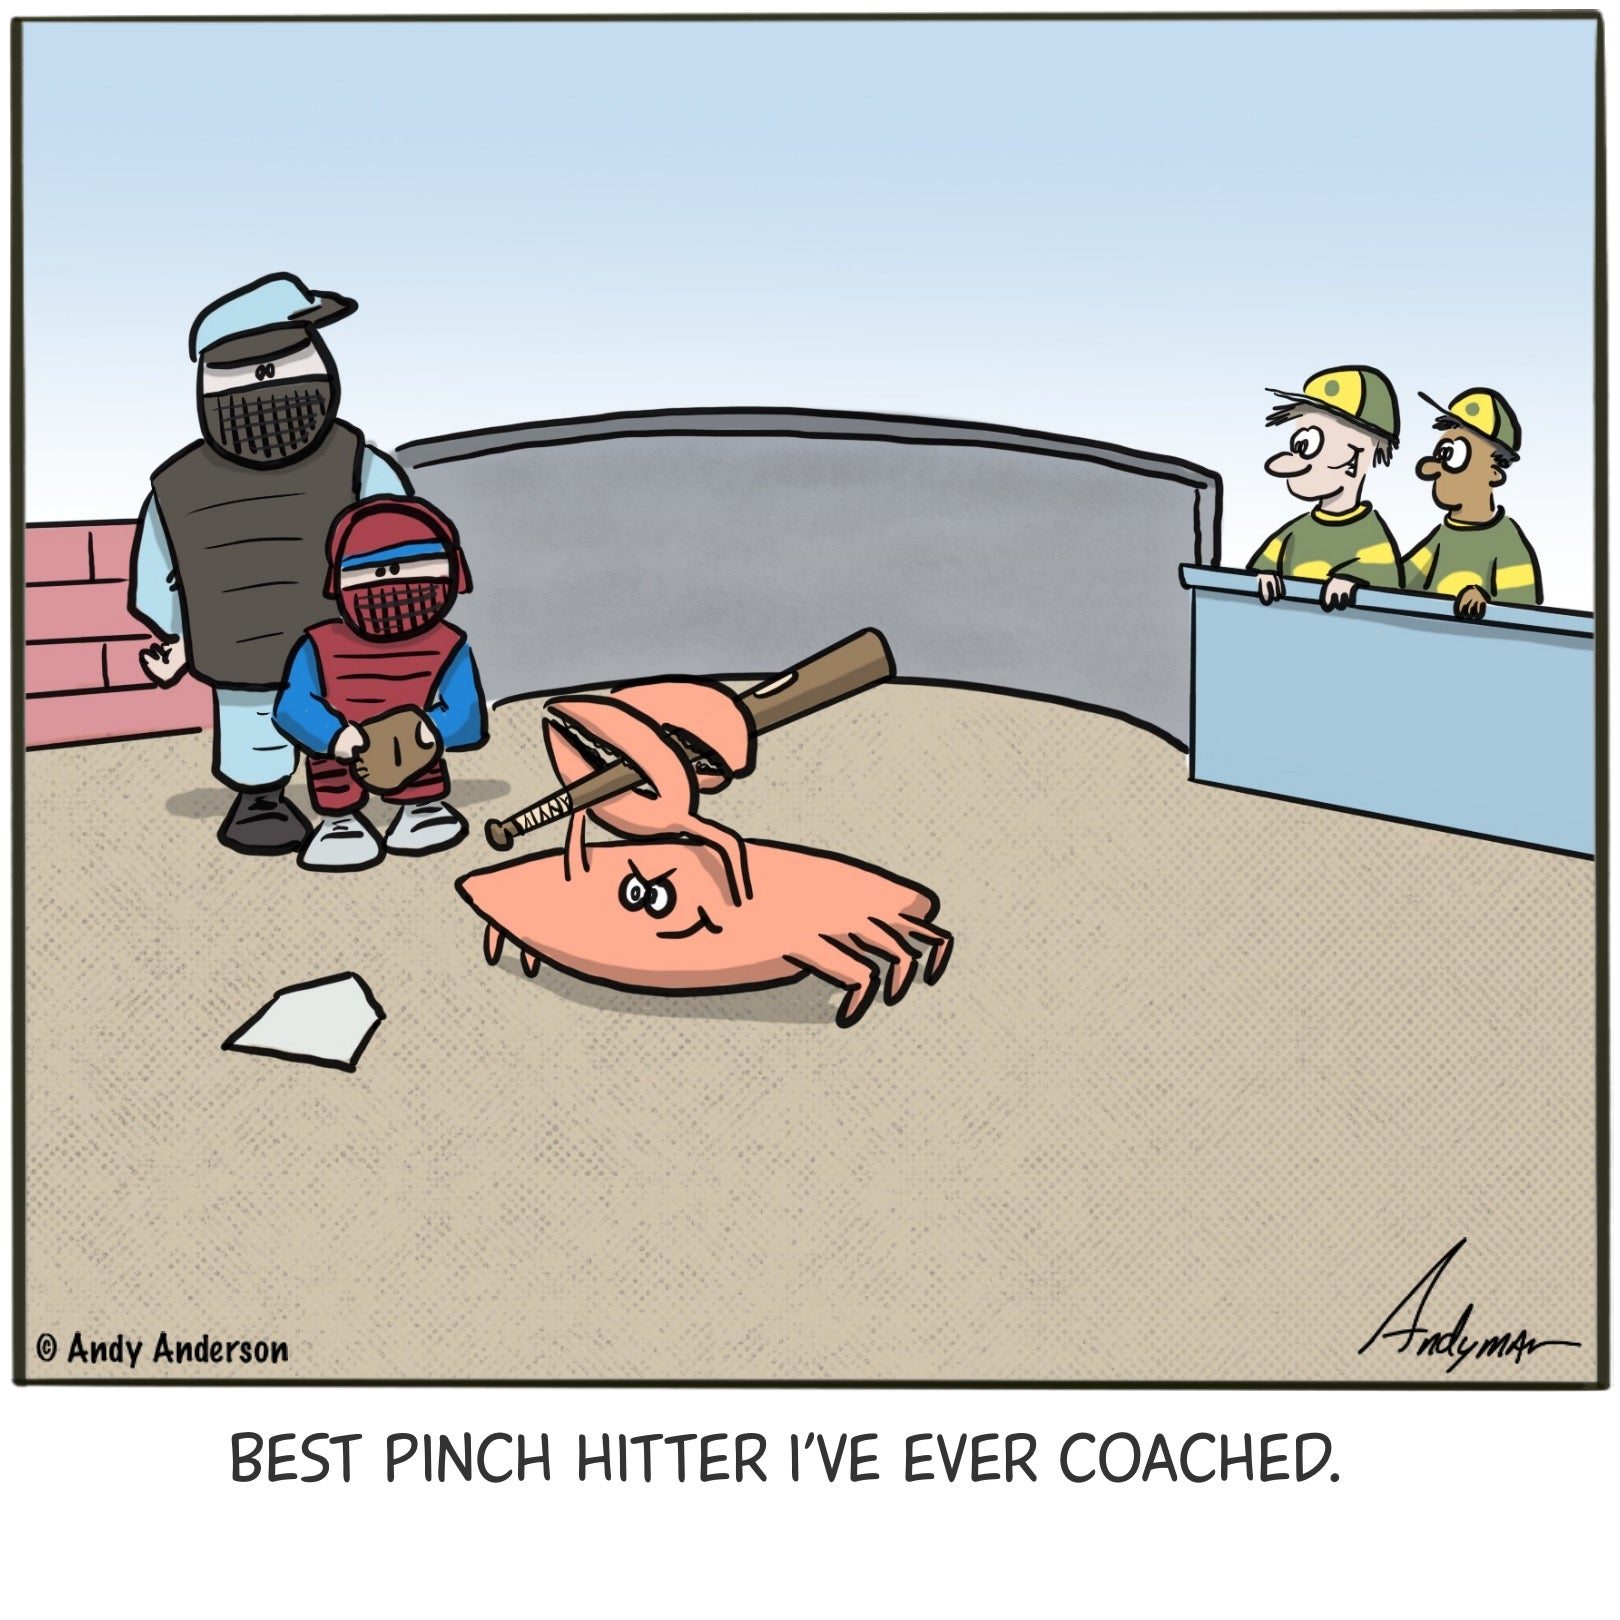 Pinch hitter cartoon by Andy Anderson